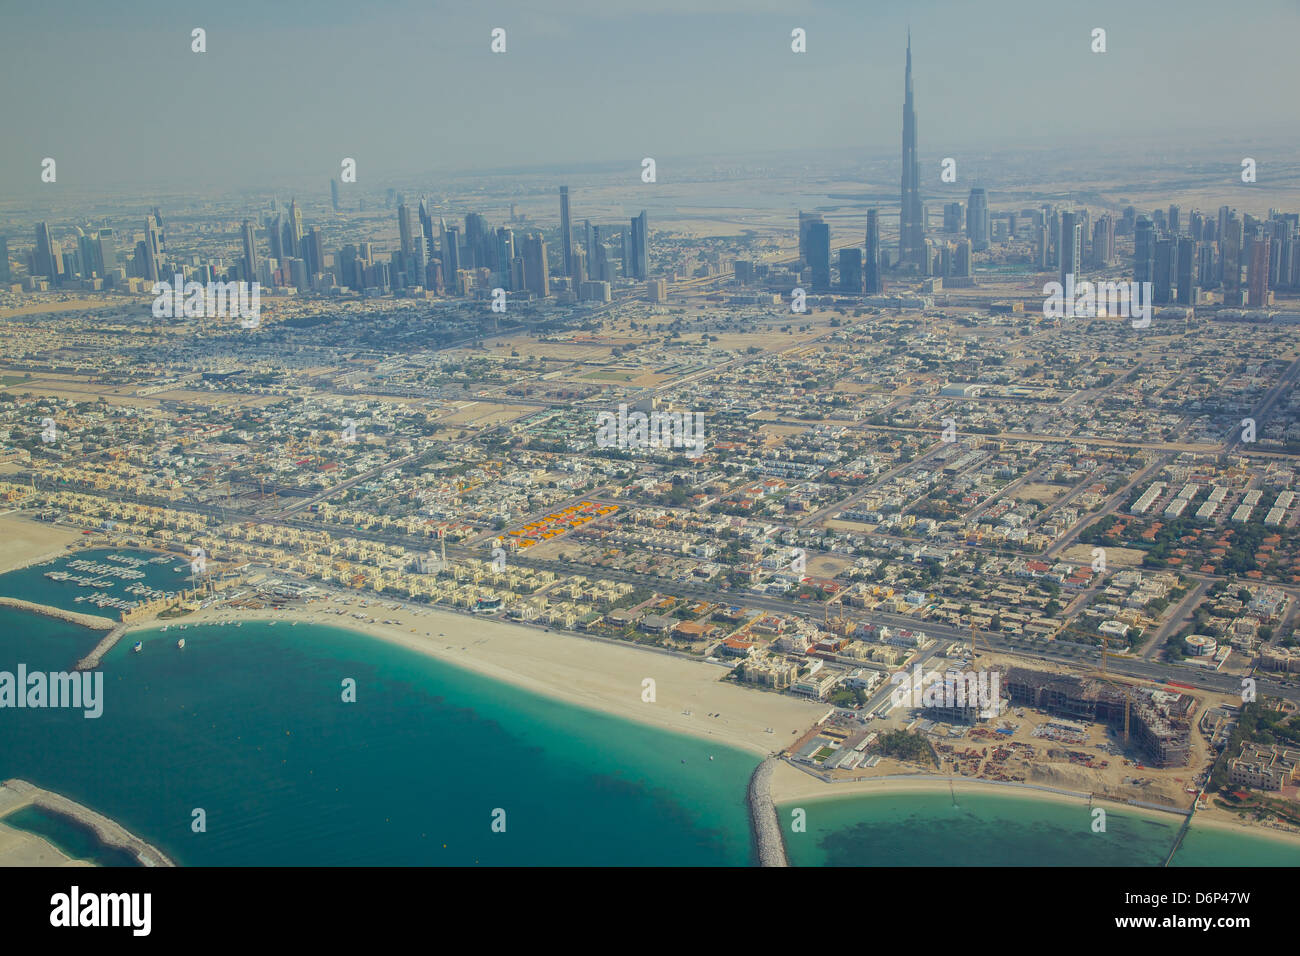 View of city skyline and Dubai Beach from seaplane, Dubai, United Arab Emirates, Middle East - Stock Image